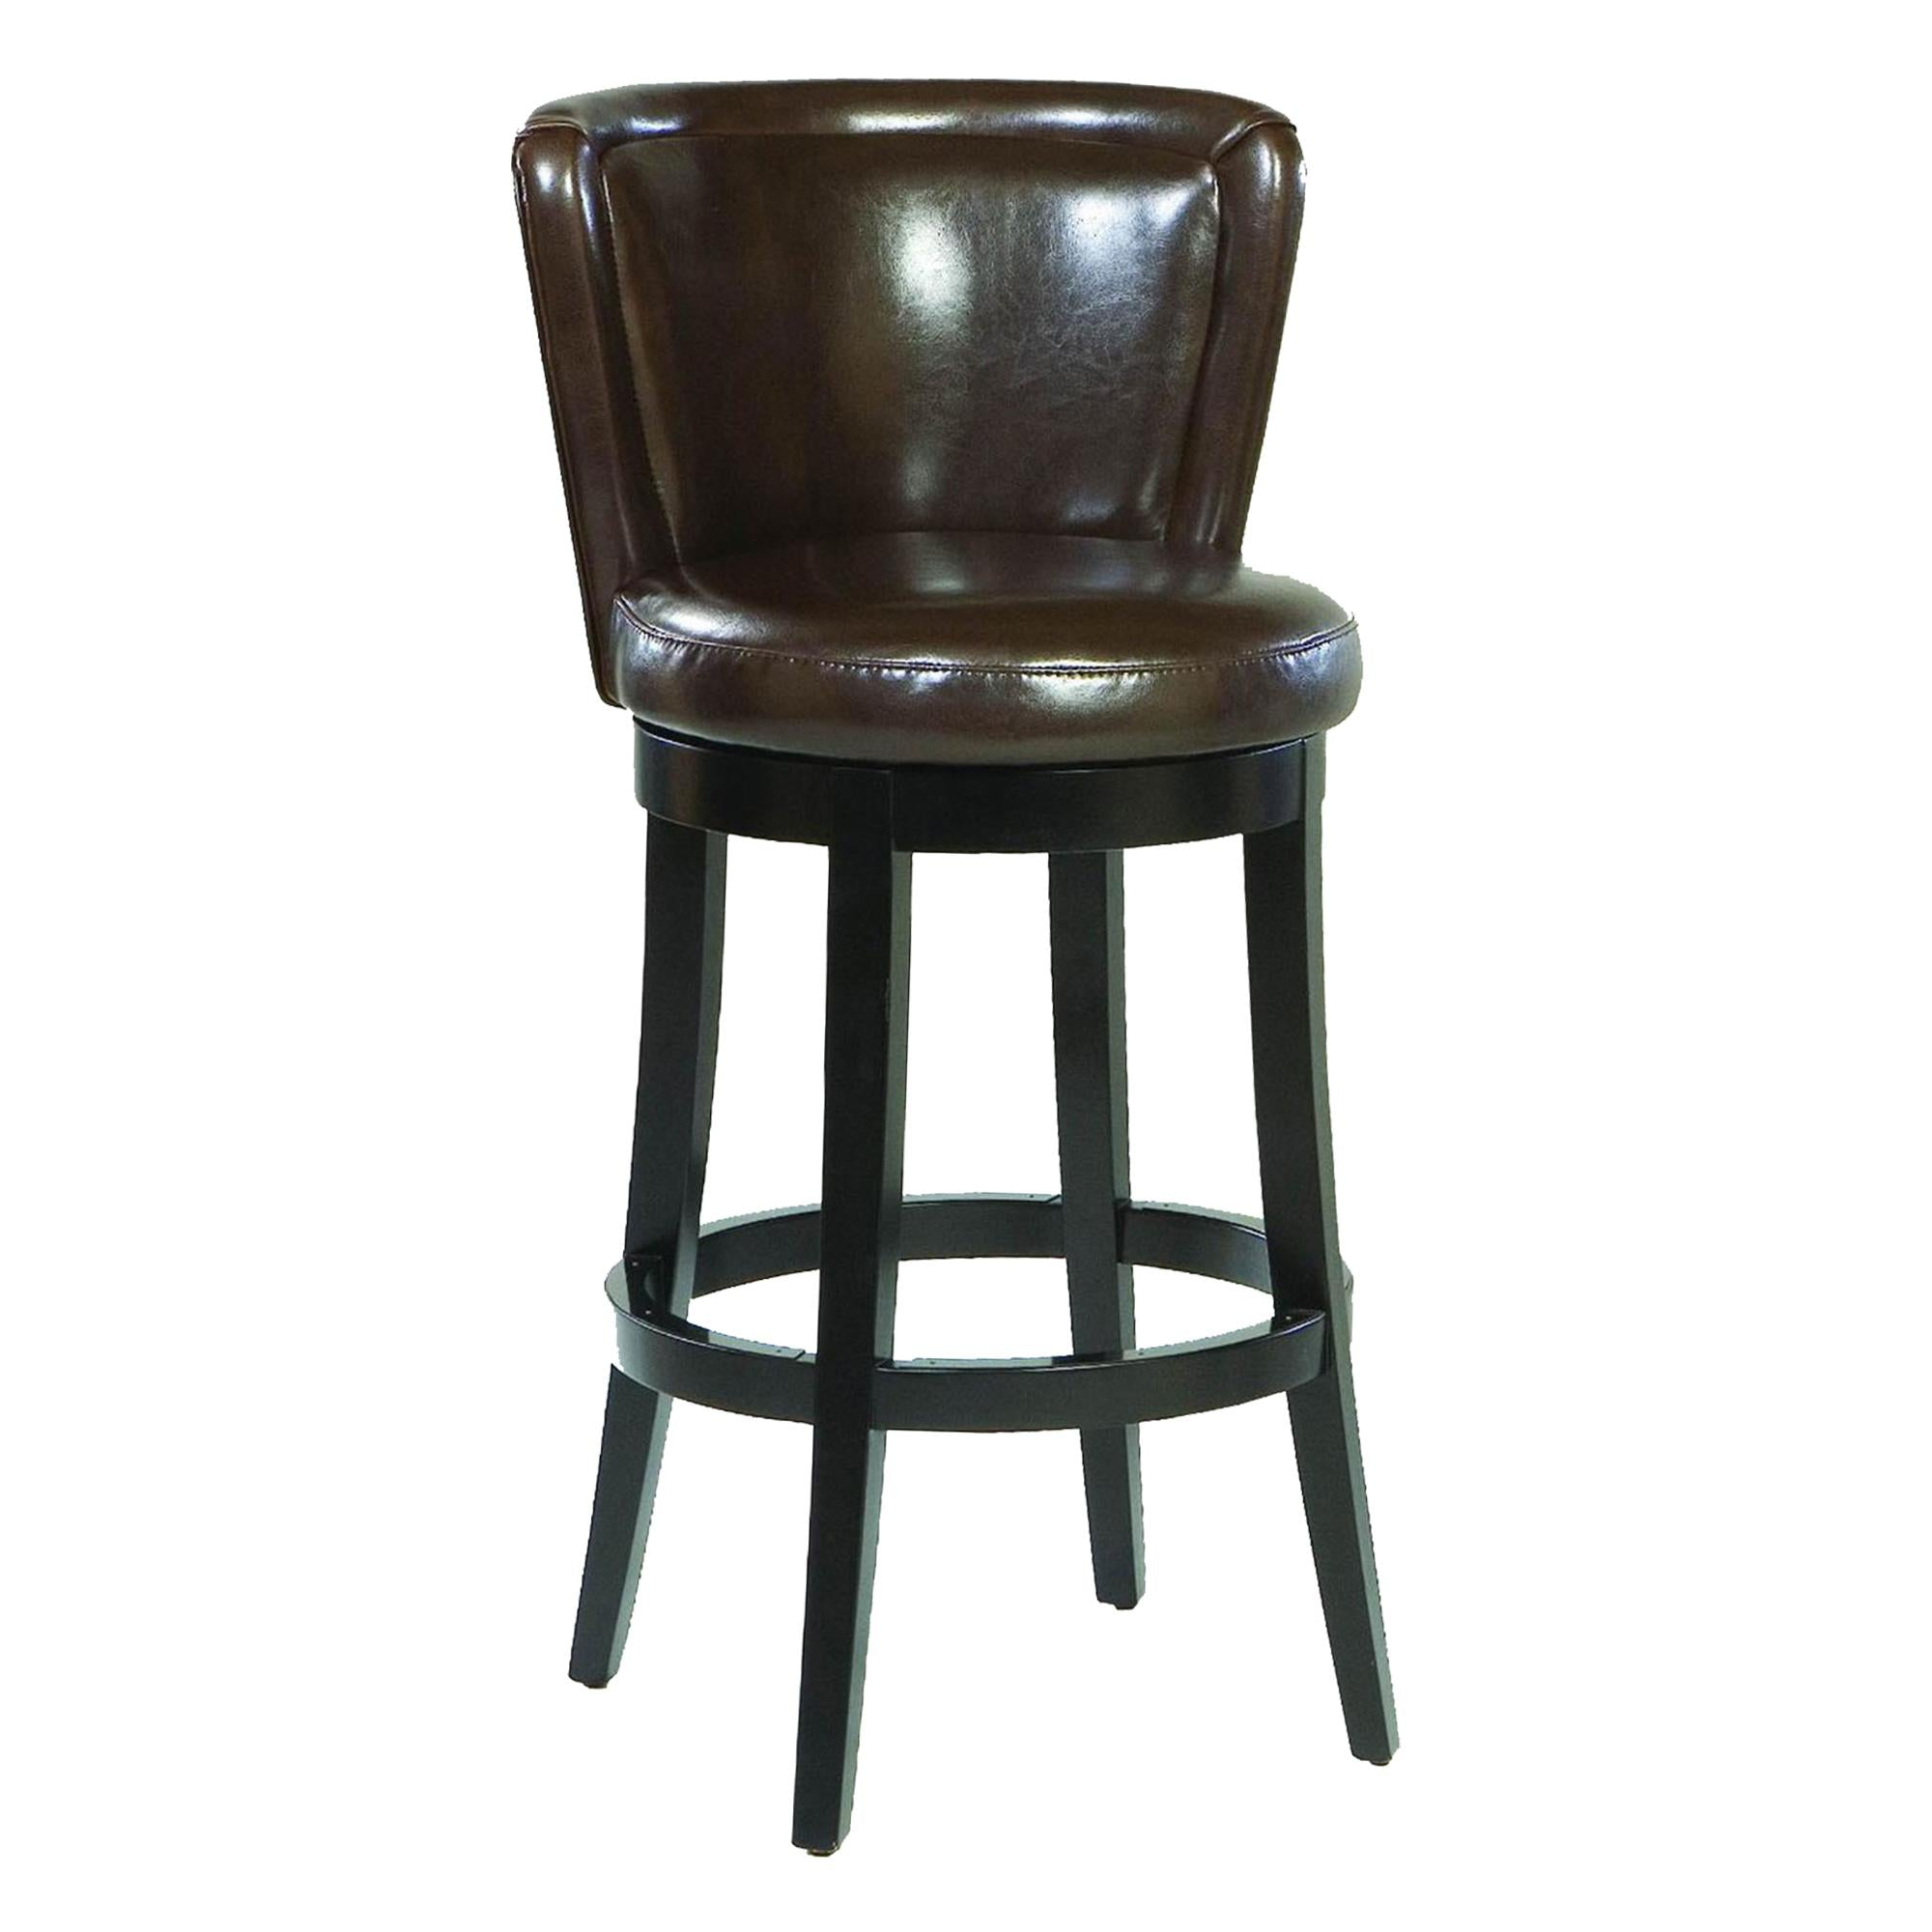 Lisbon 26' Swivel Barstool/ Brown Leather Mbs-11